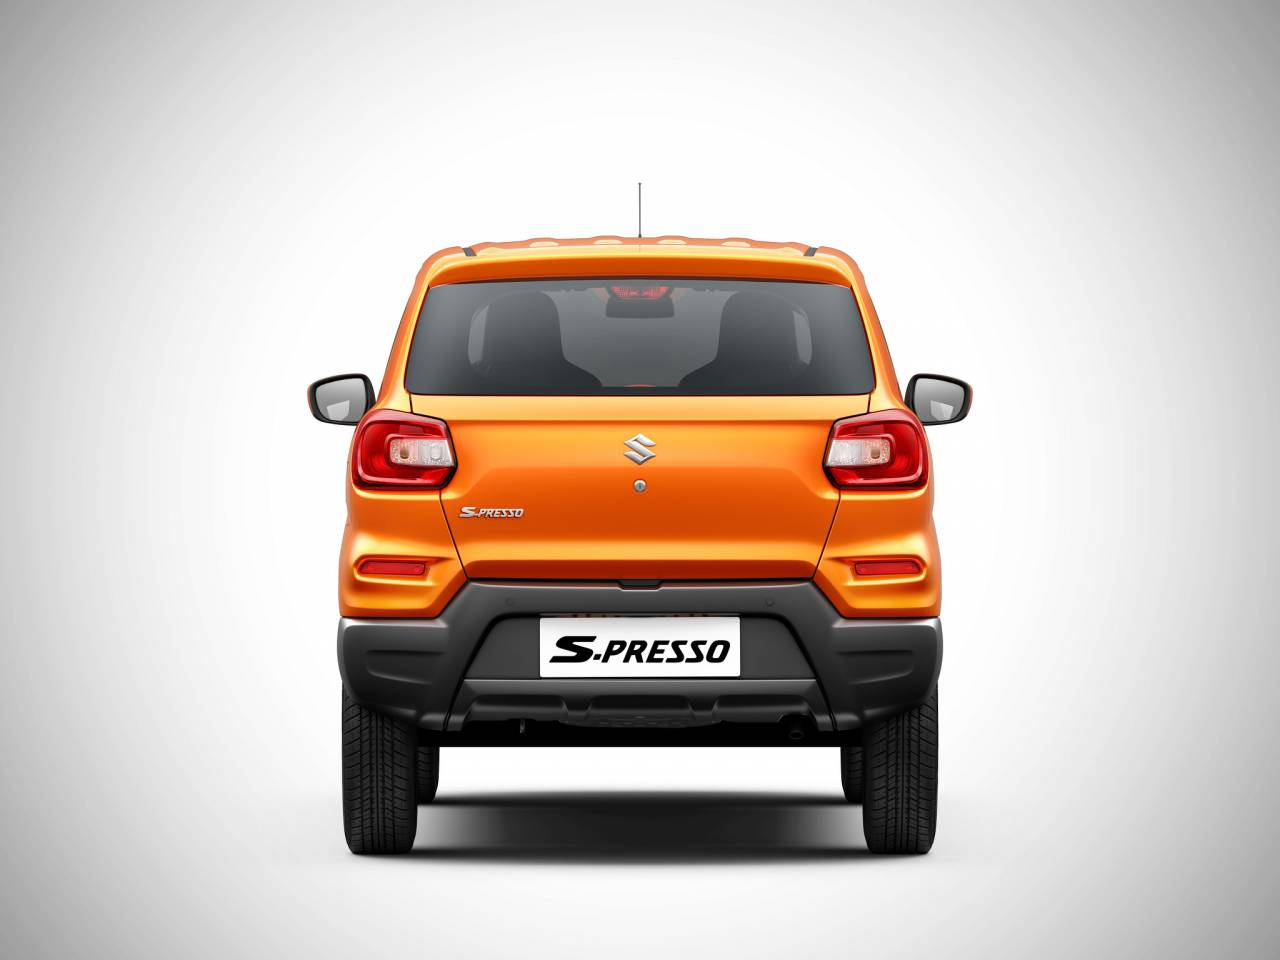 The launch of the S-Presso comes at a time when all carmakers are offering never-seen-before discounts. Maruti's domestic sales during April-August period was down by 27 percent to 5.53 lakh. Maruti would be keen to clock upwards of 8000 units a month with the S-Presso (Image: Maruti Suzuki)